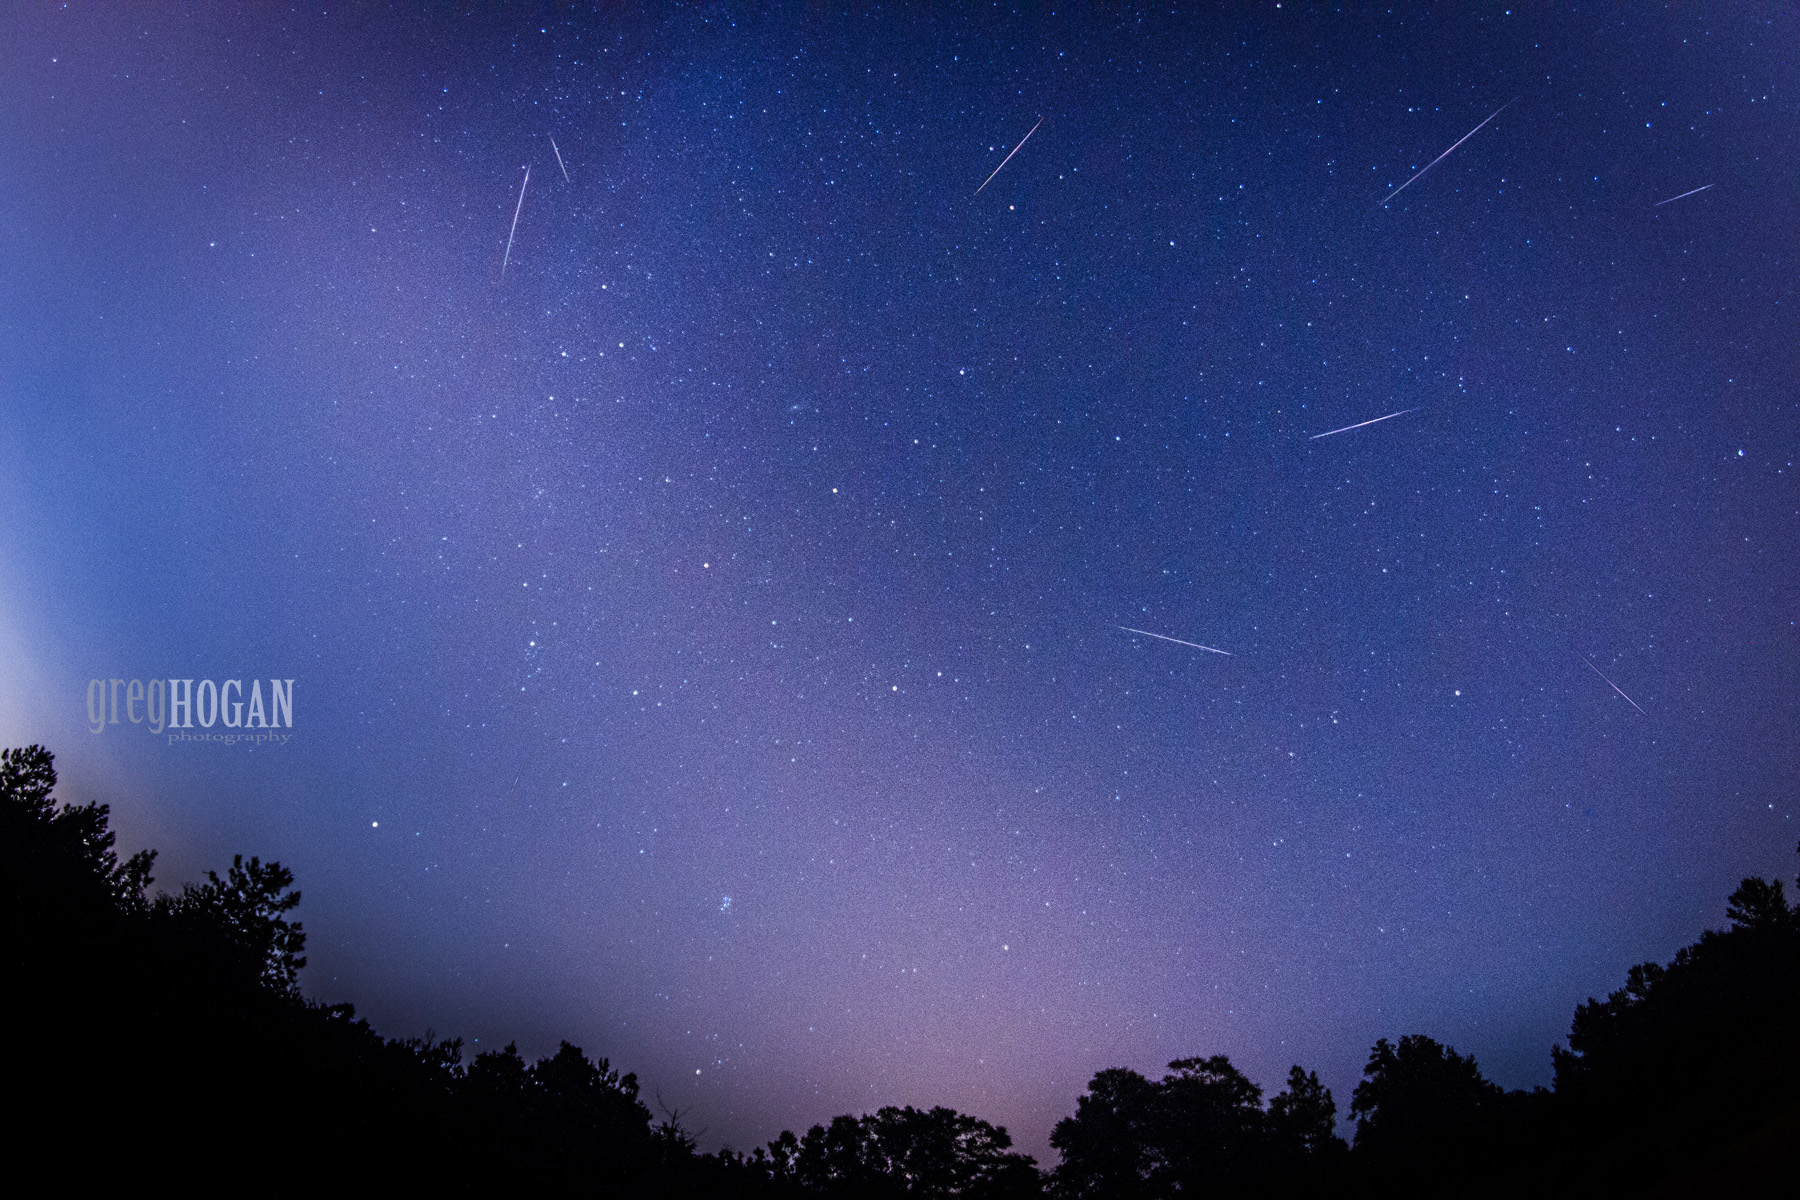 2015 Perseid Meteors Over Georgia